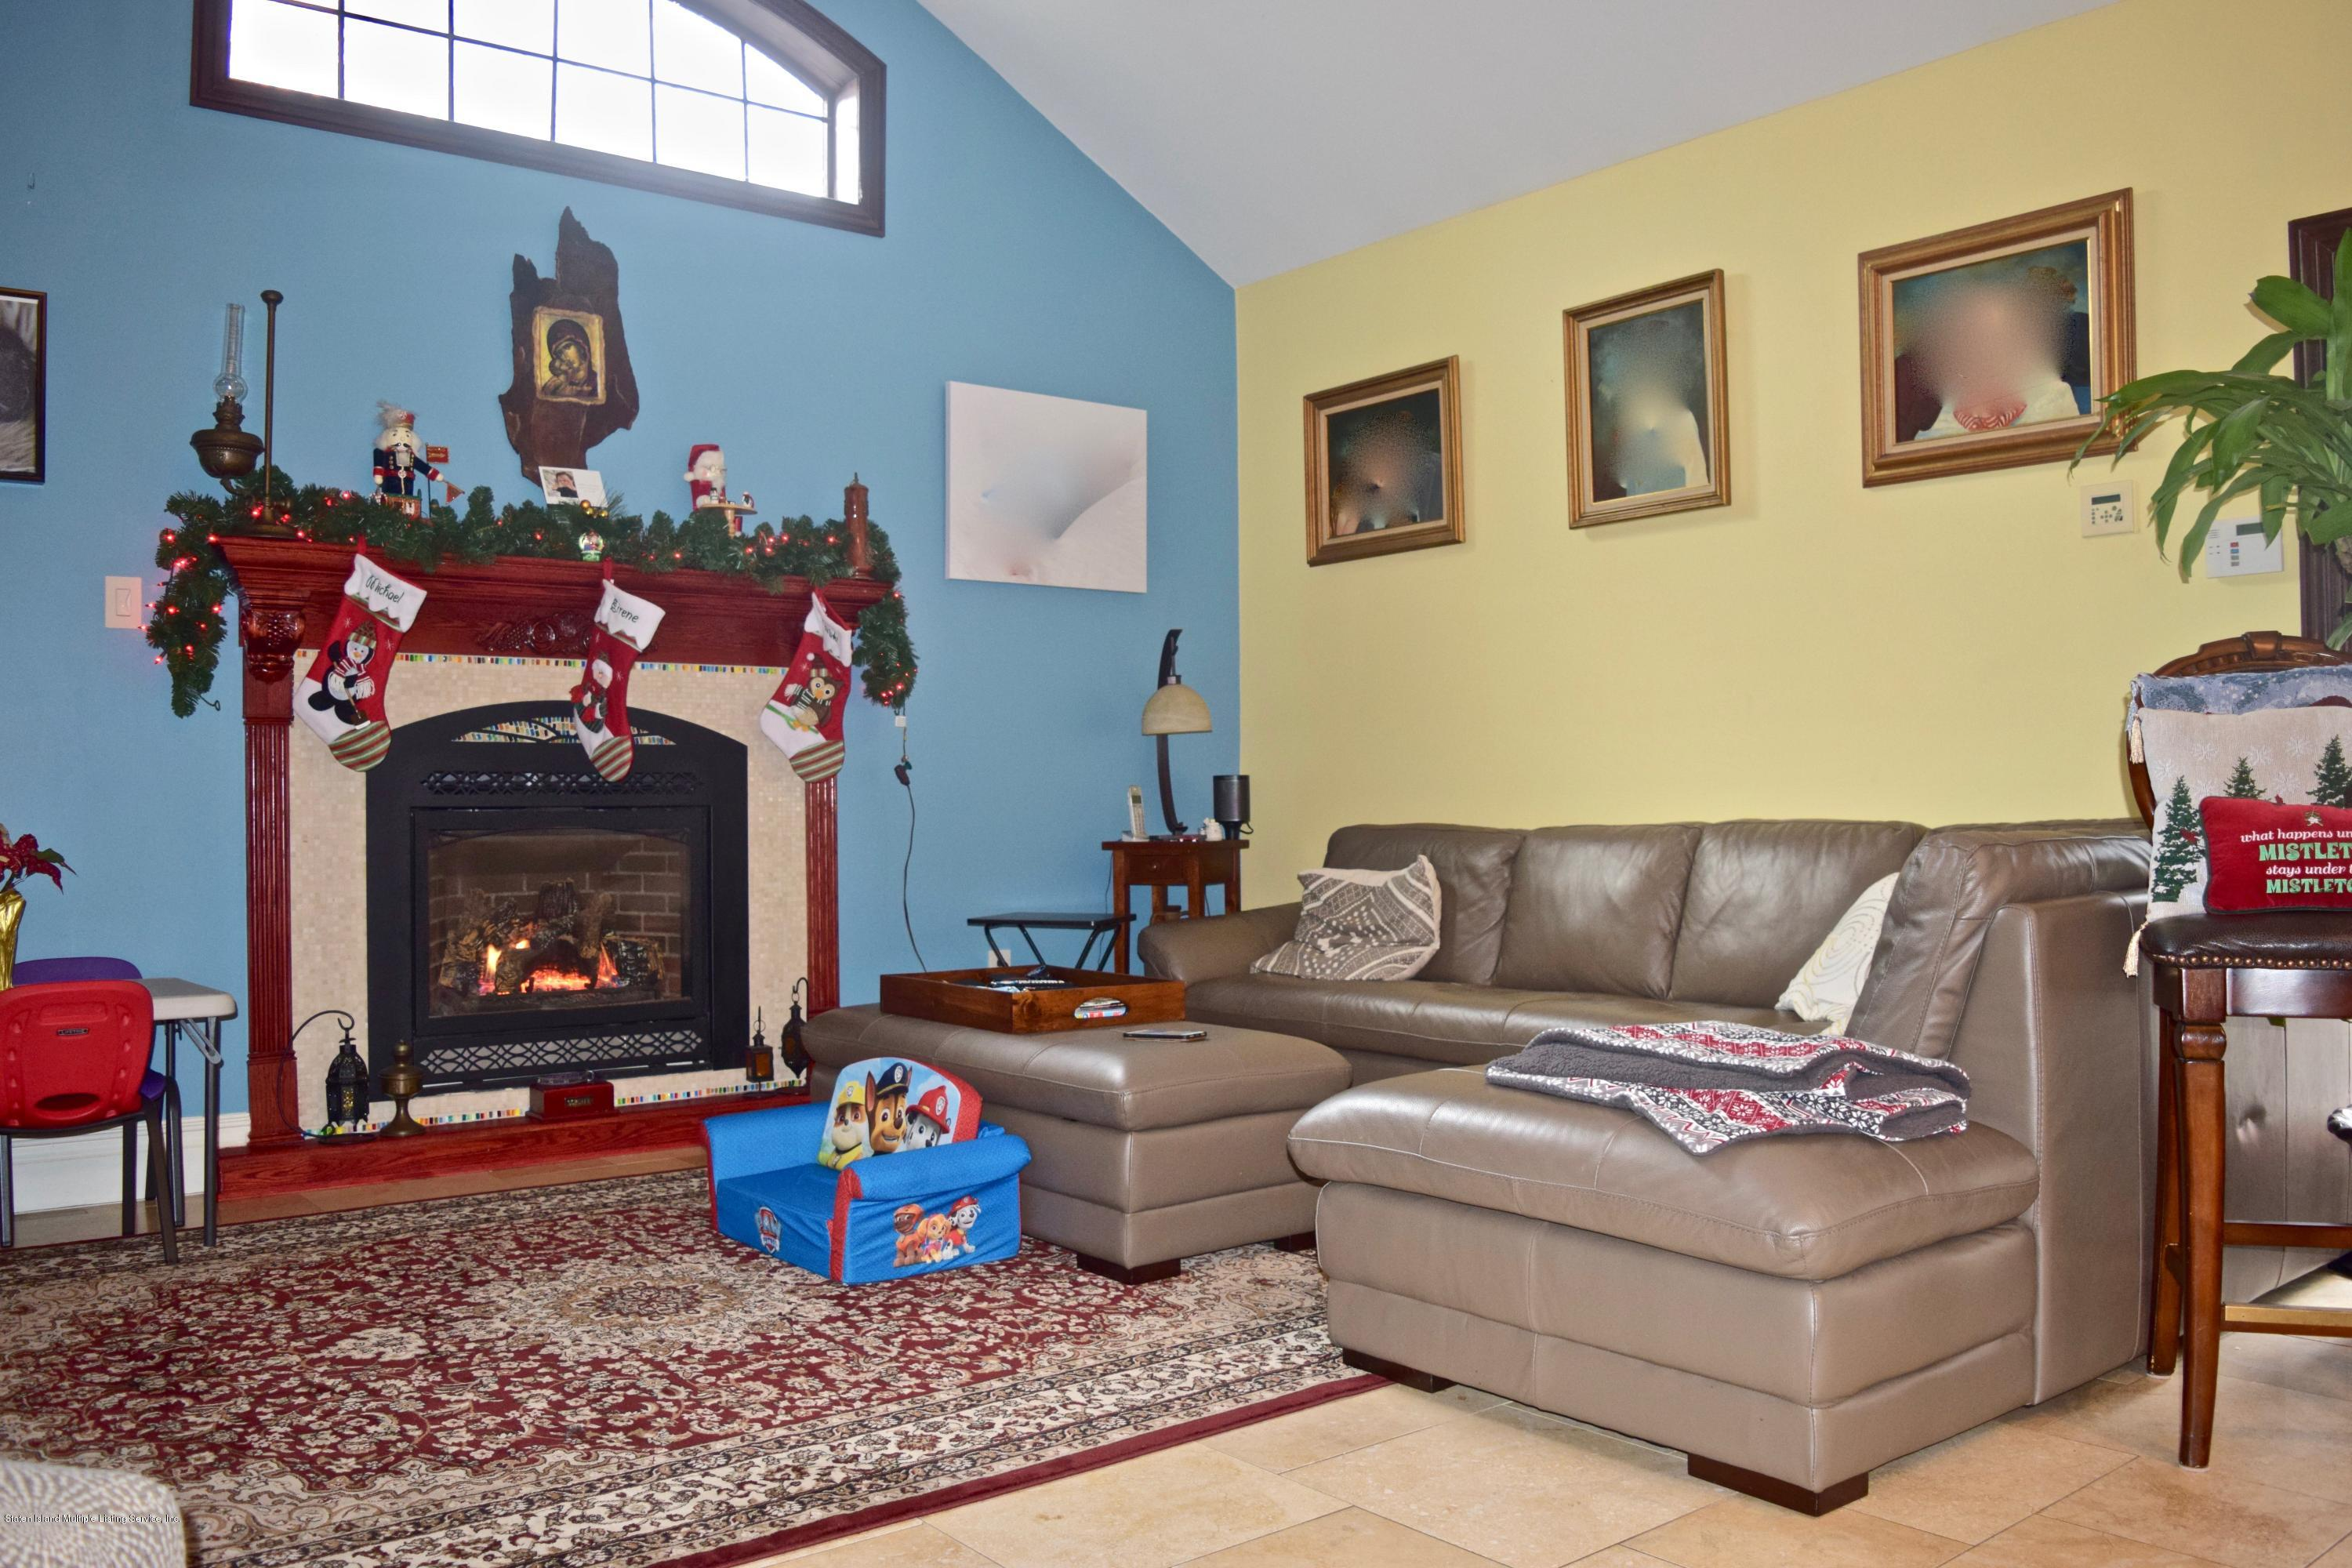 Single Family - Detached 107 Northern Boulevard  Staten Island, NY 10301, MLS-1124986-7